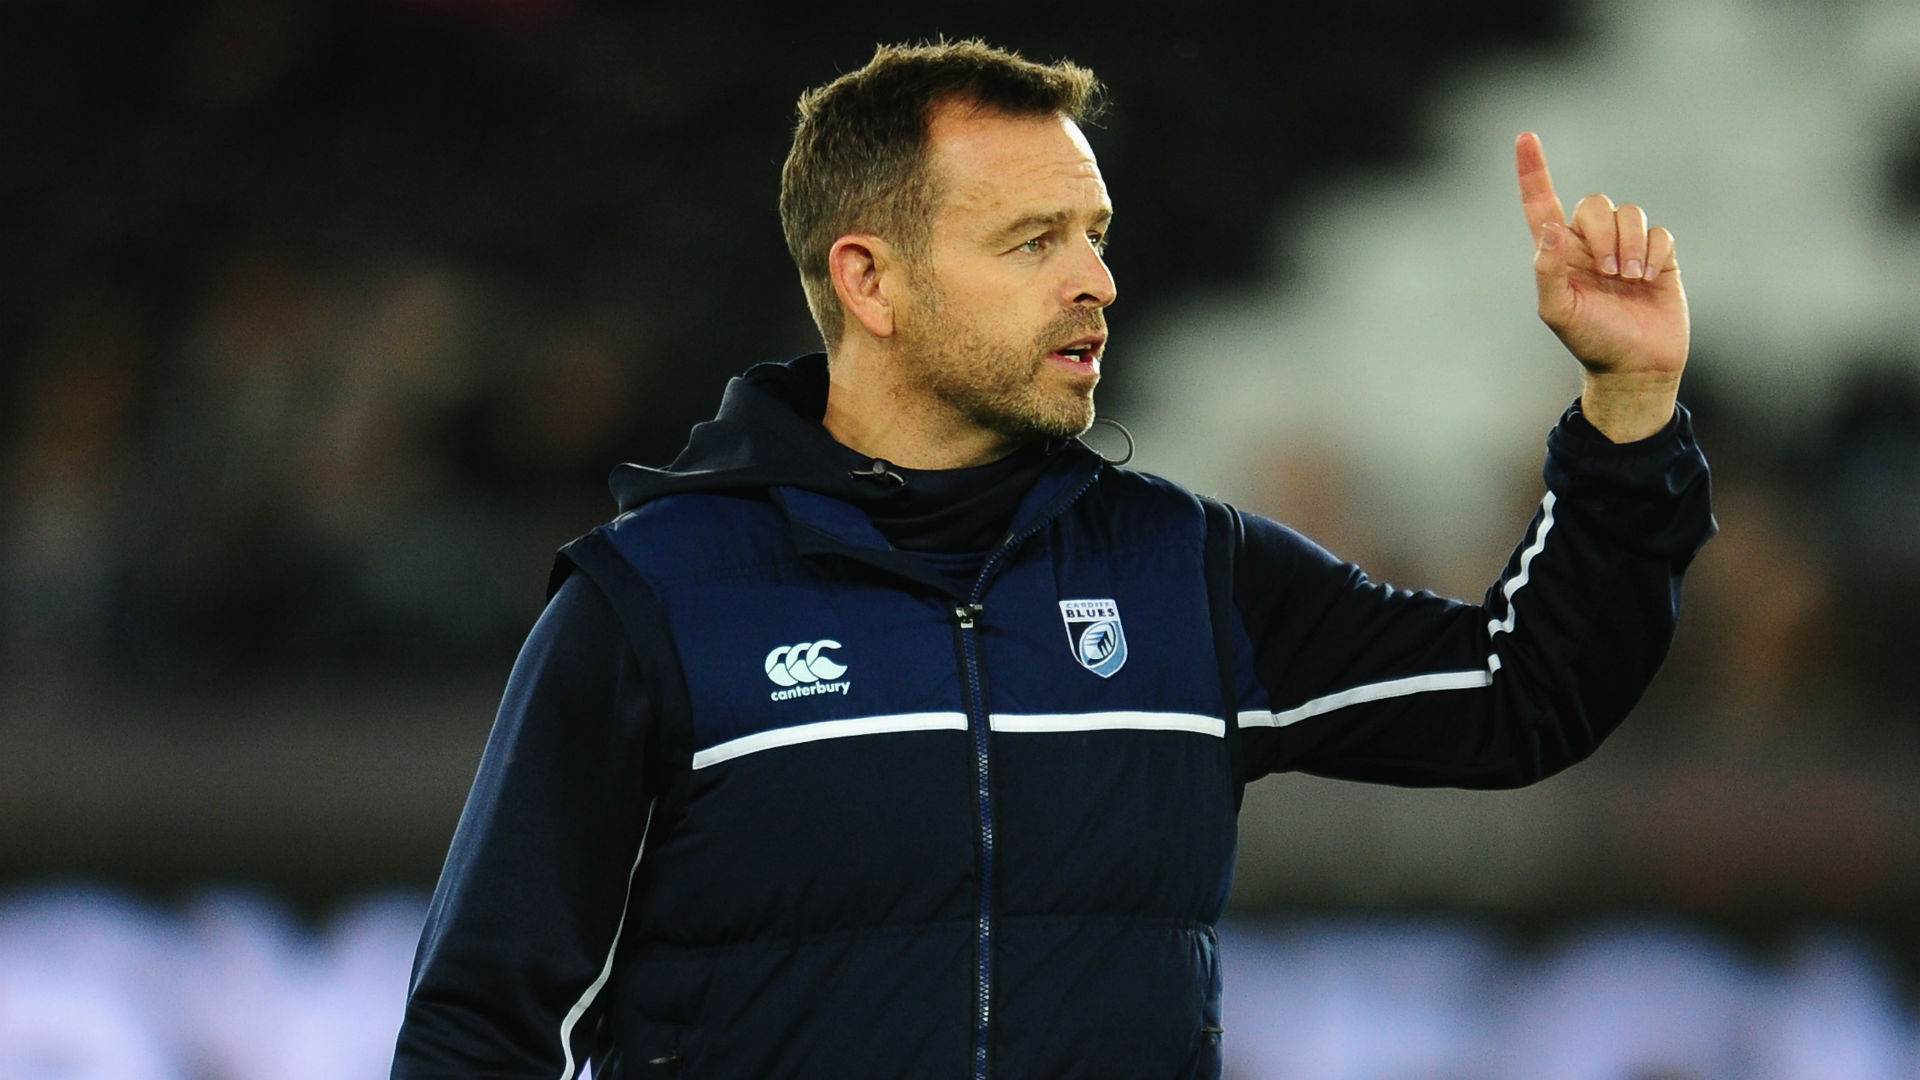 Danny Wilson will replace Dave Rennie when the Glasgow Warriors head coach takes the Australia job.